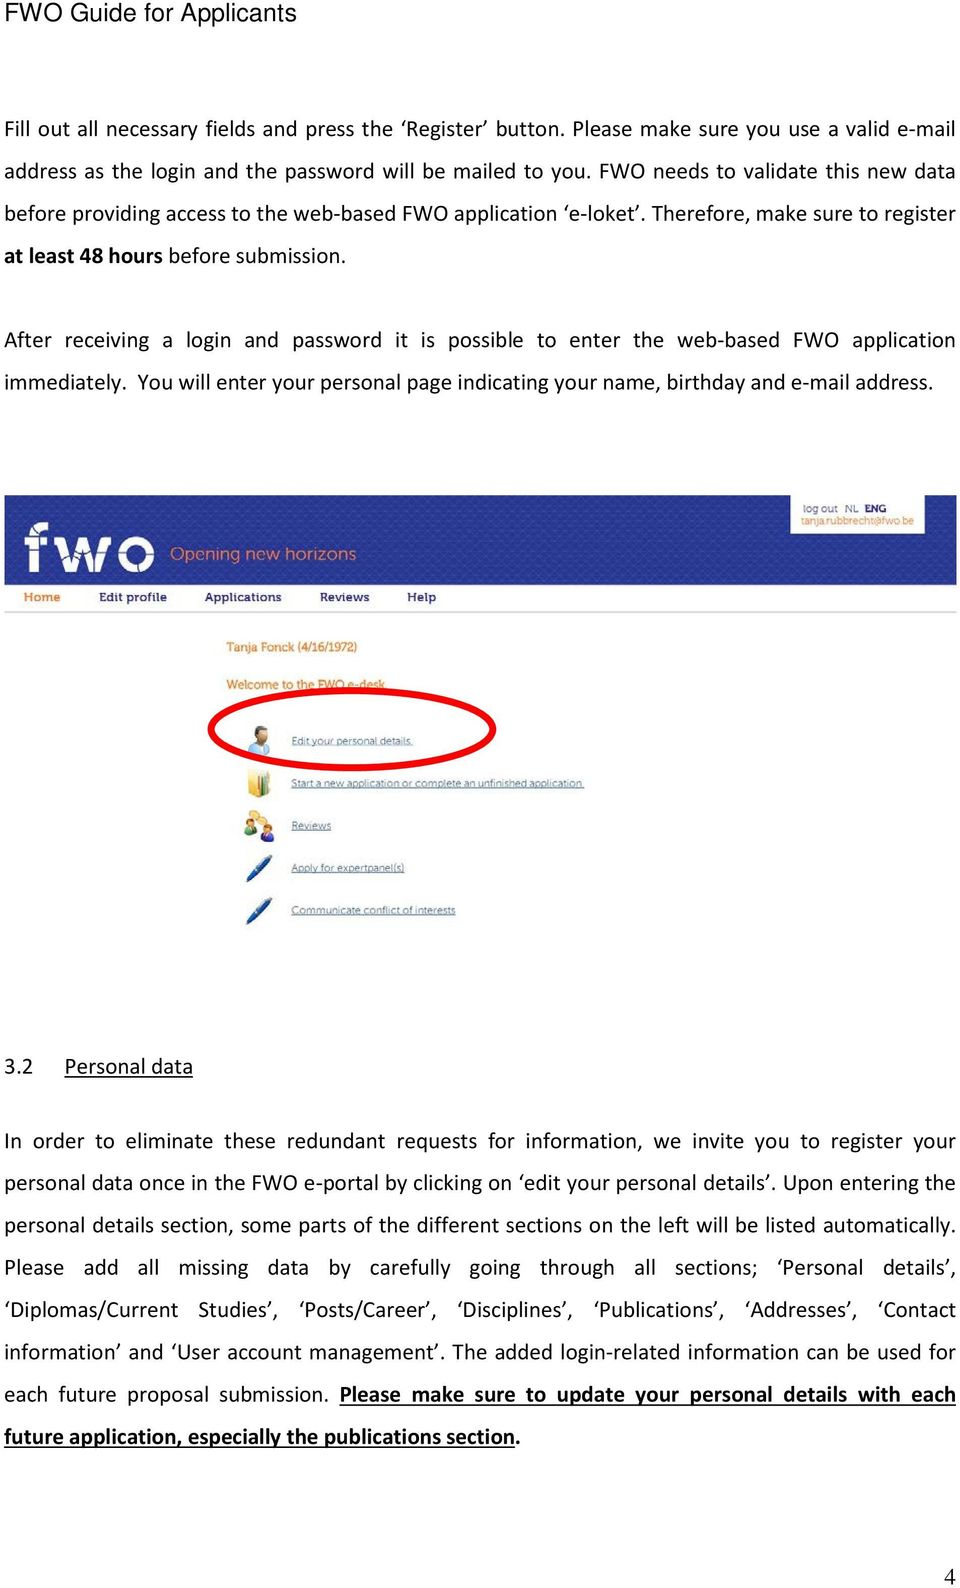 After receiving a login and password it is possible to enter the web-based FWO application immediately. You will enter your personal page indicating your name, birthday and e-mail address. 3.